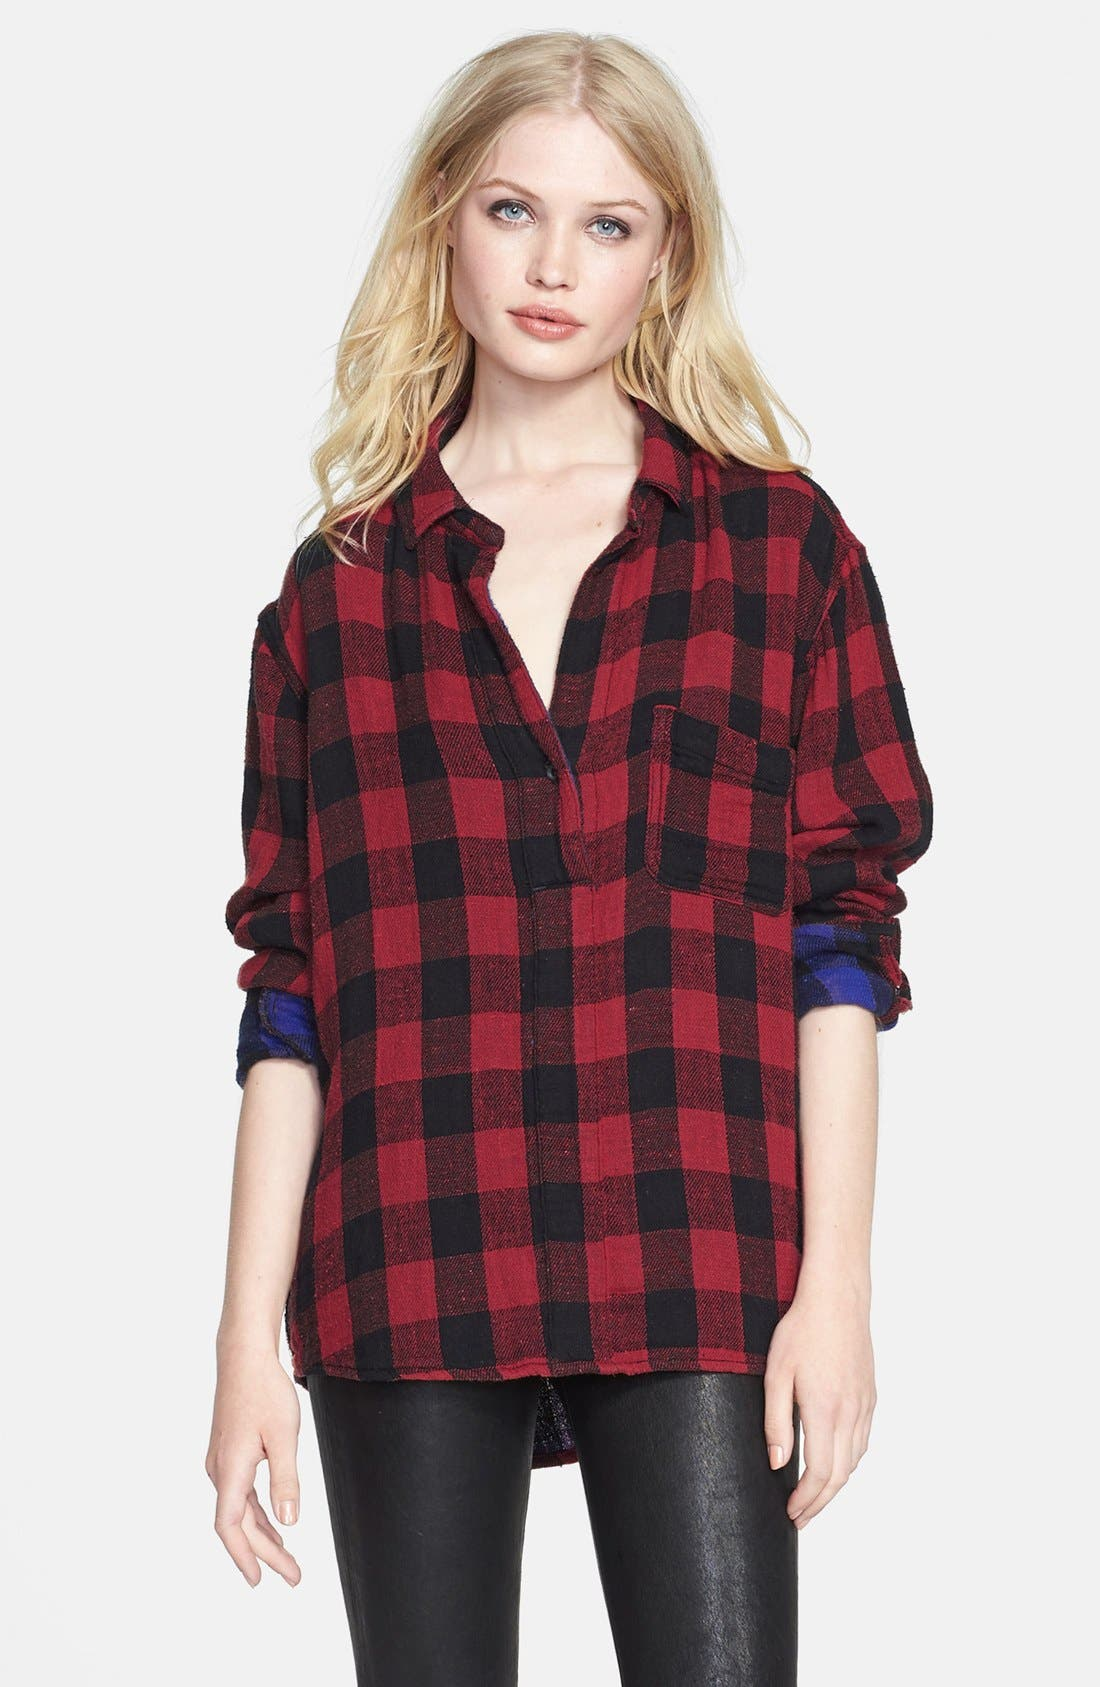 JEAN 'The Leeds' Plaid Shirt,                             Main thumbnail 1, color,                             600